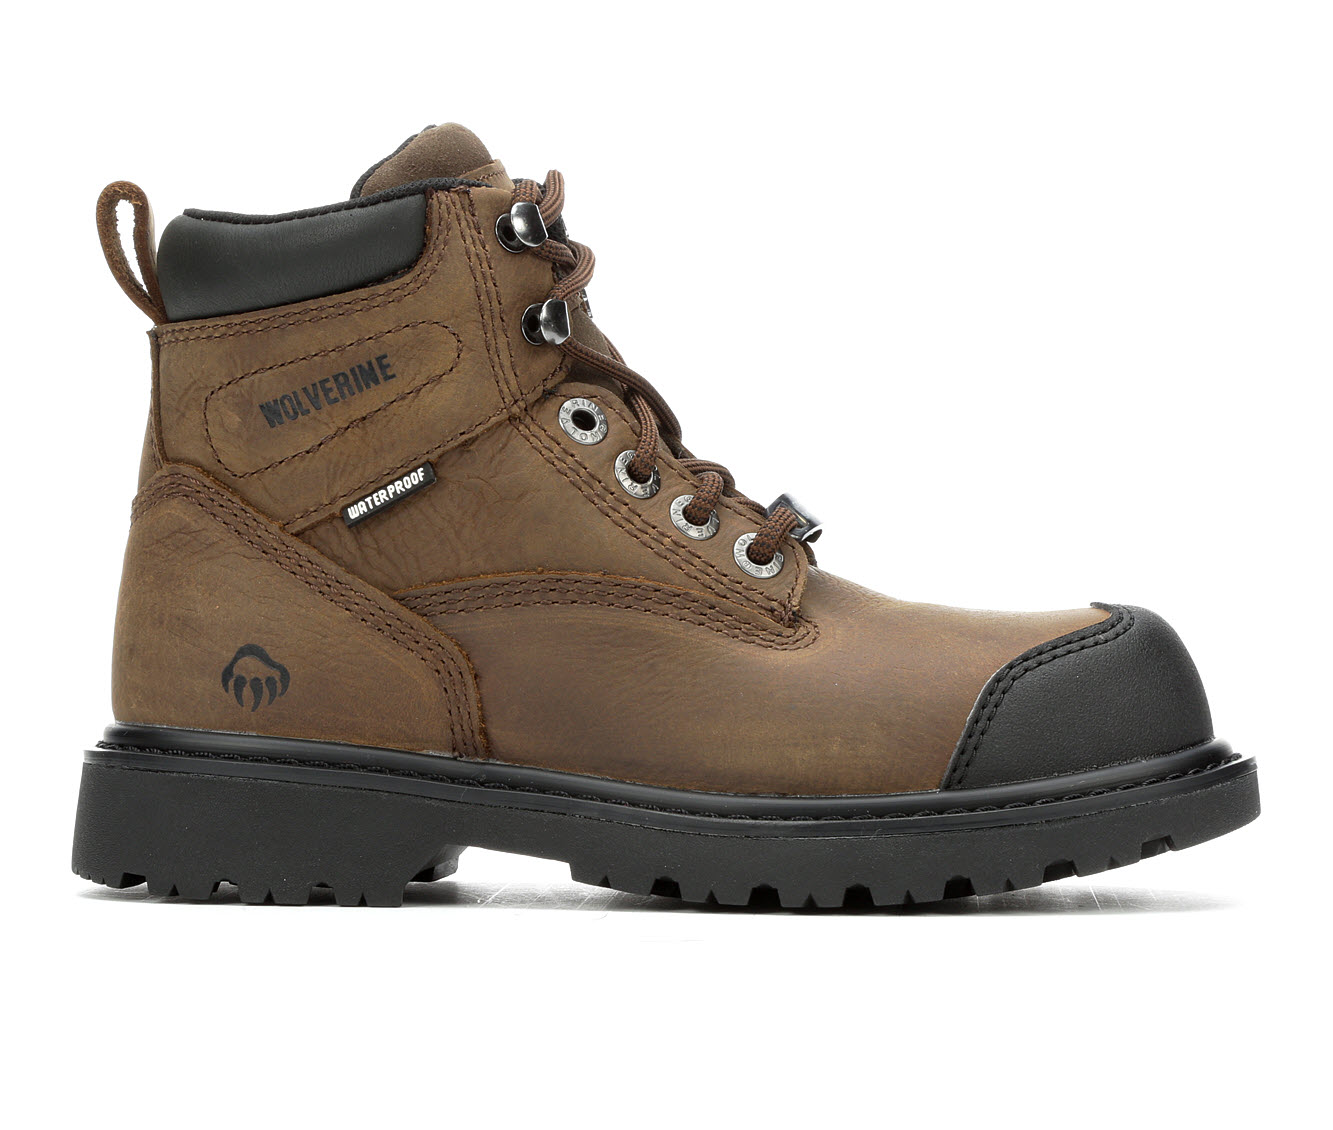 Wolverine Rig Composite Toe Waterproof Men's Boots (Brown Leather)